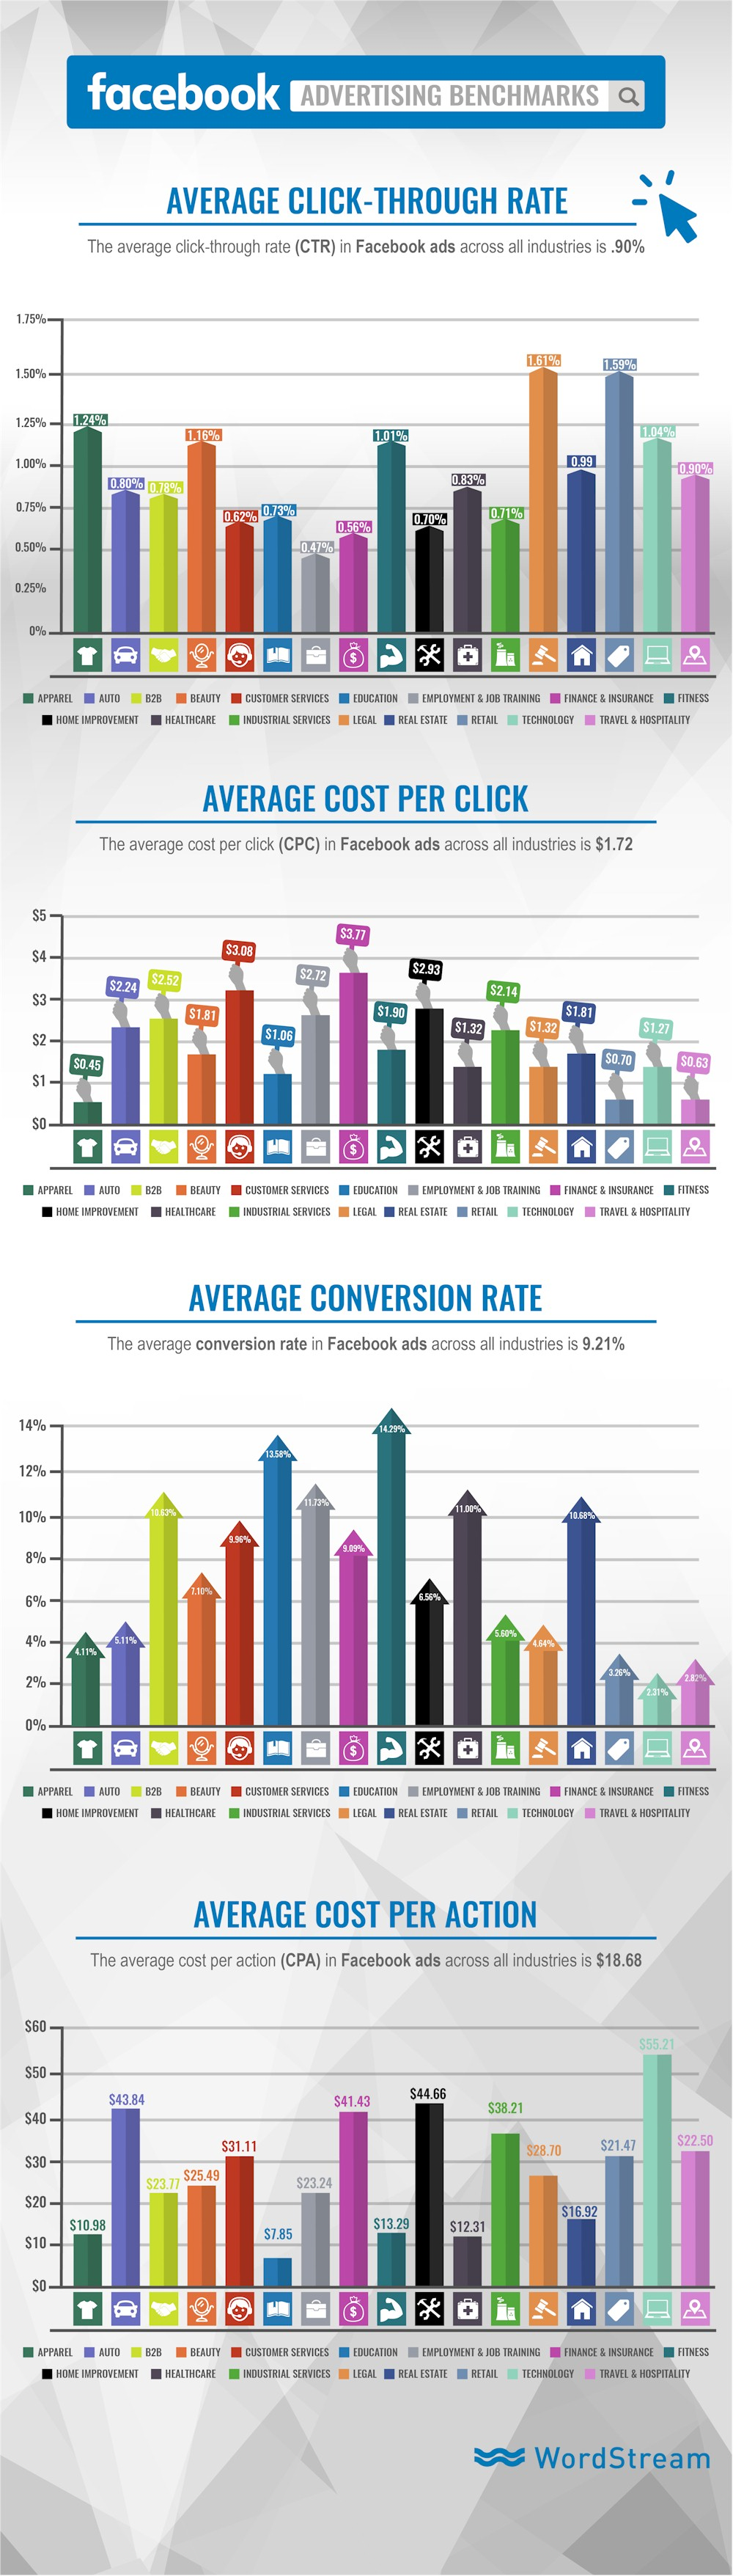 Infographic: Facebook Advertising Benchmarks